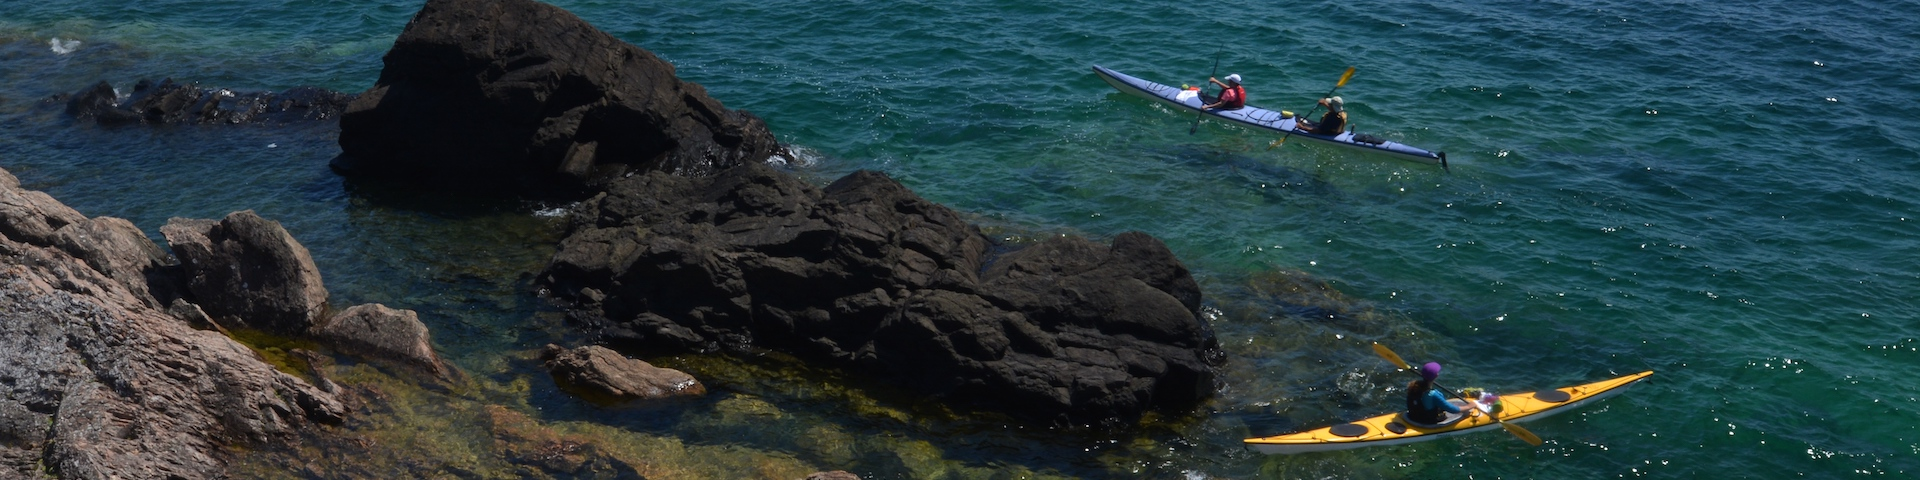 Sea Kayak the Slate Islands by Naturally Superior Adventures - Image 323